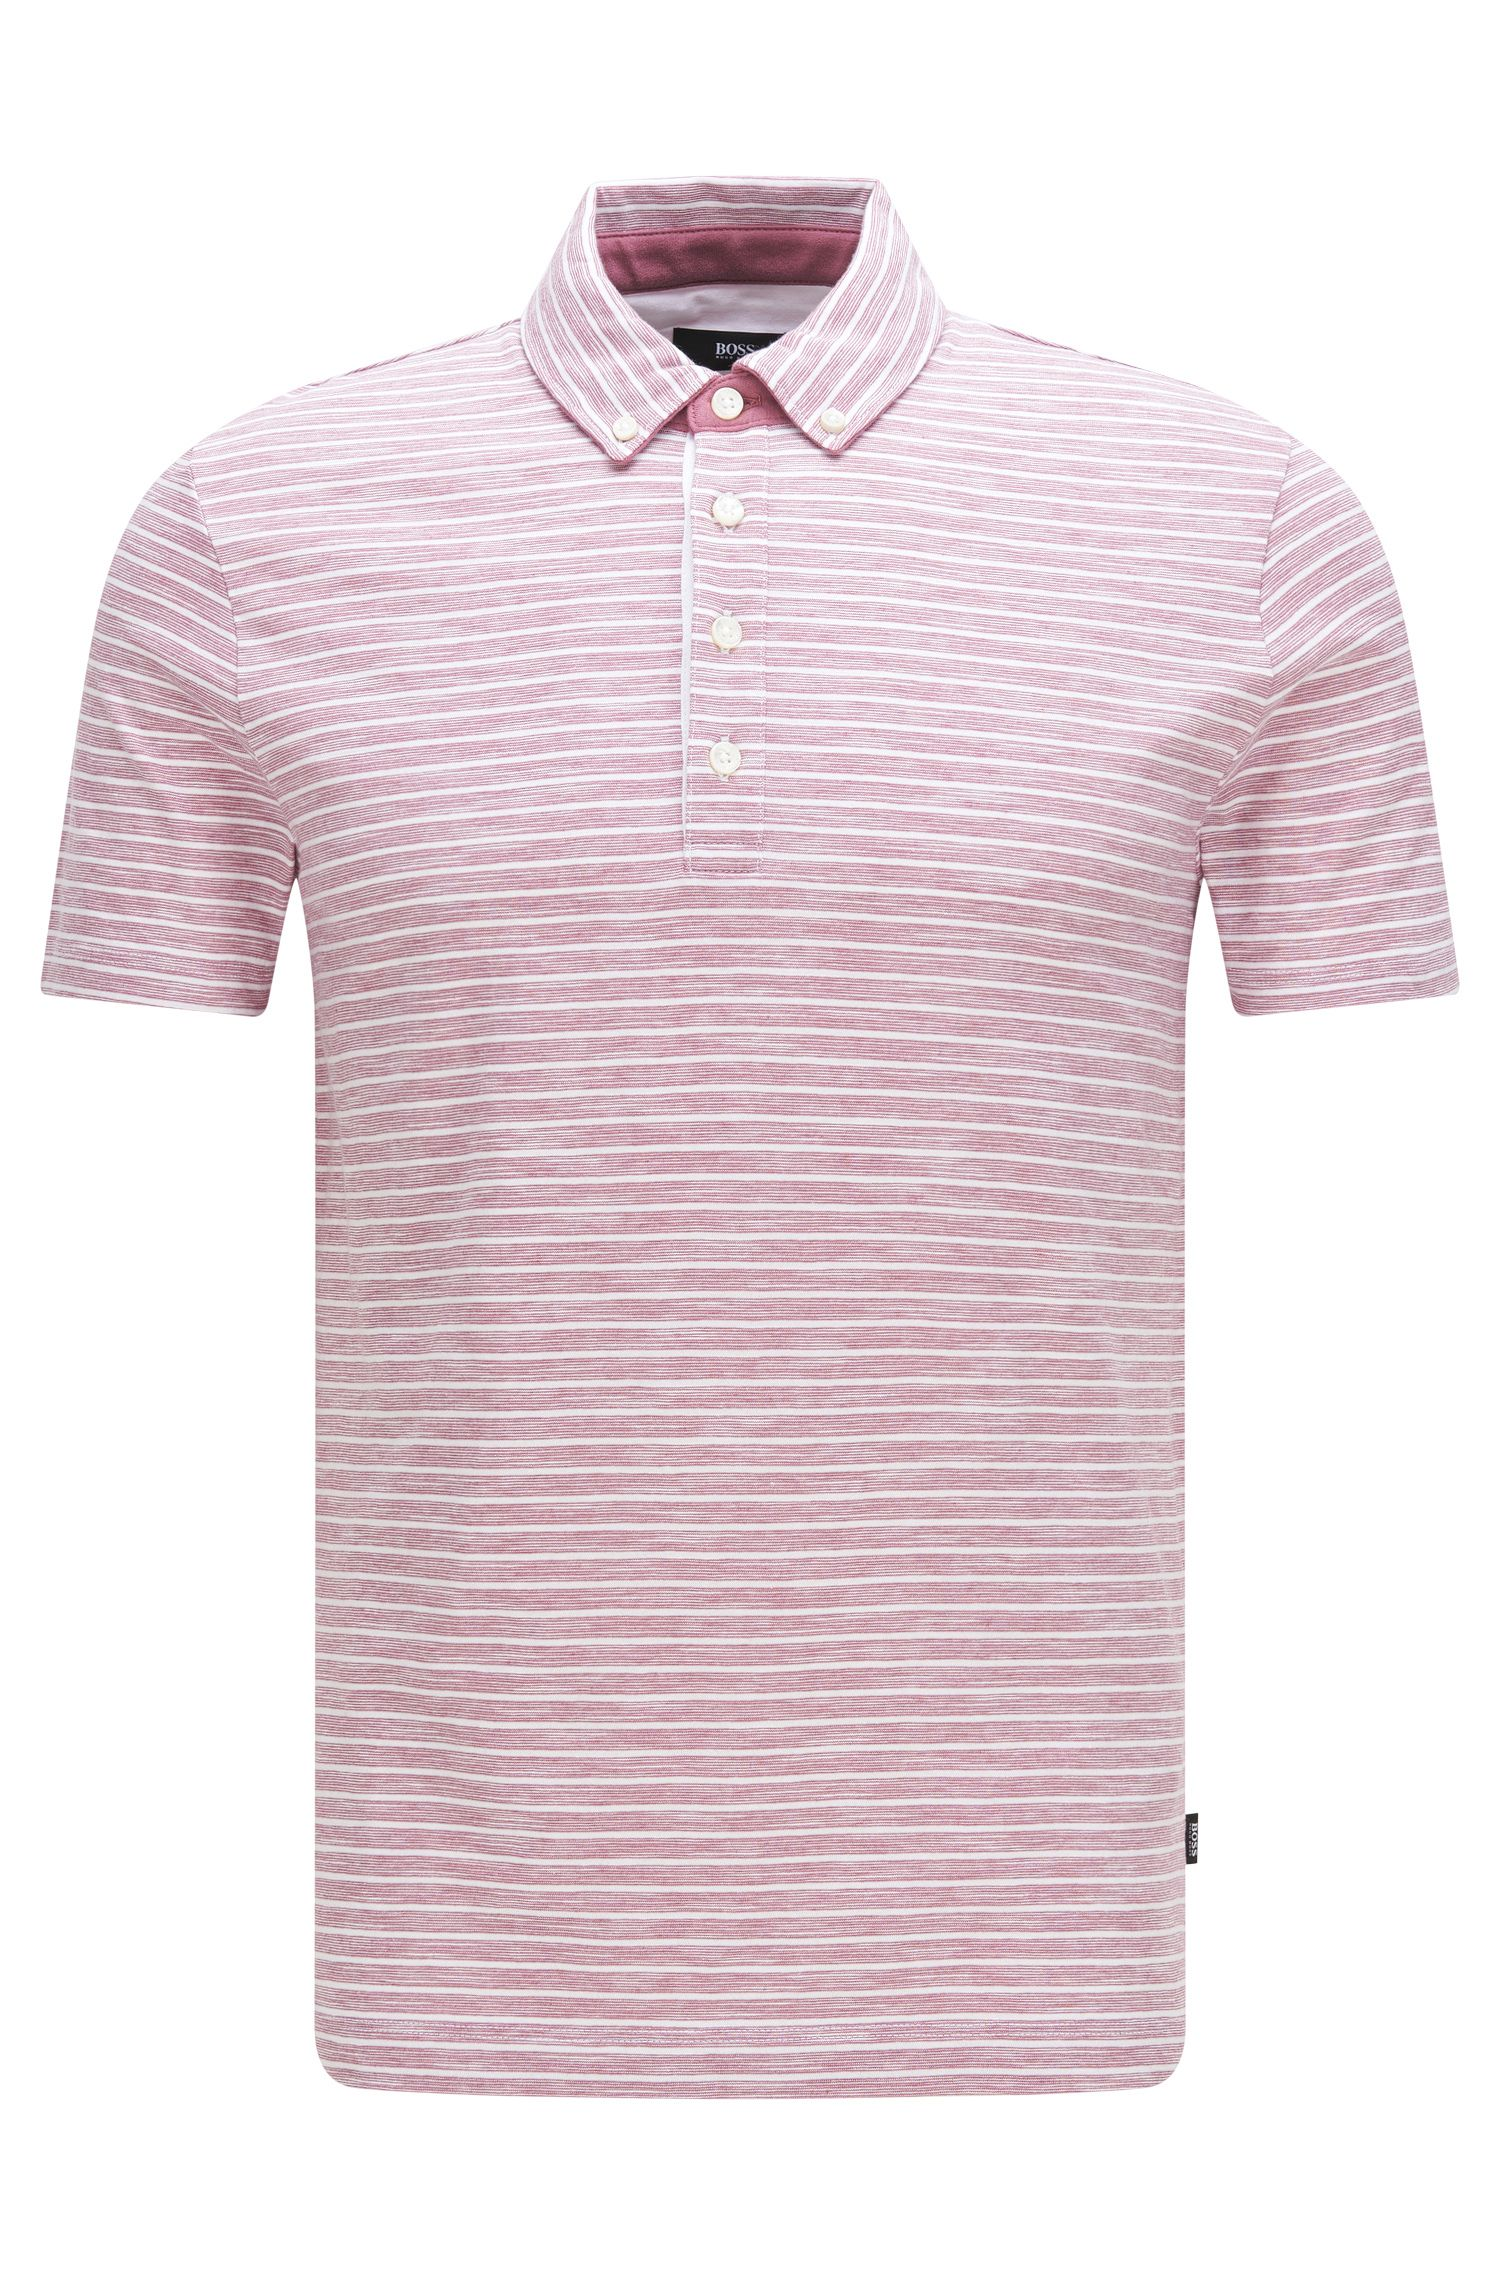 Cotton Striped Polo Shirt, Slim Fit | Platt